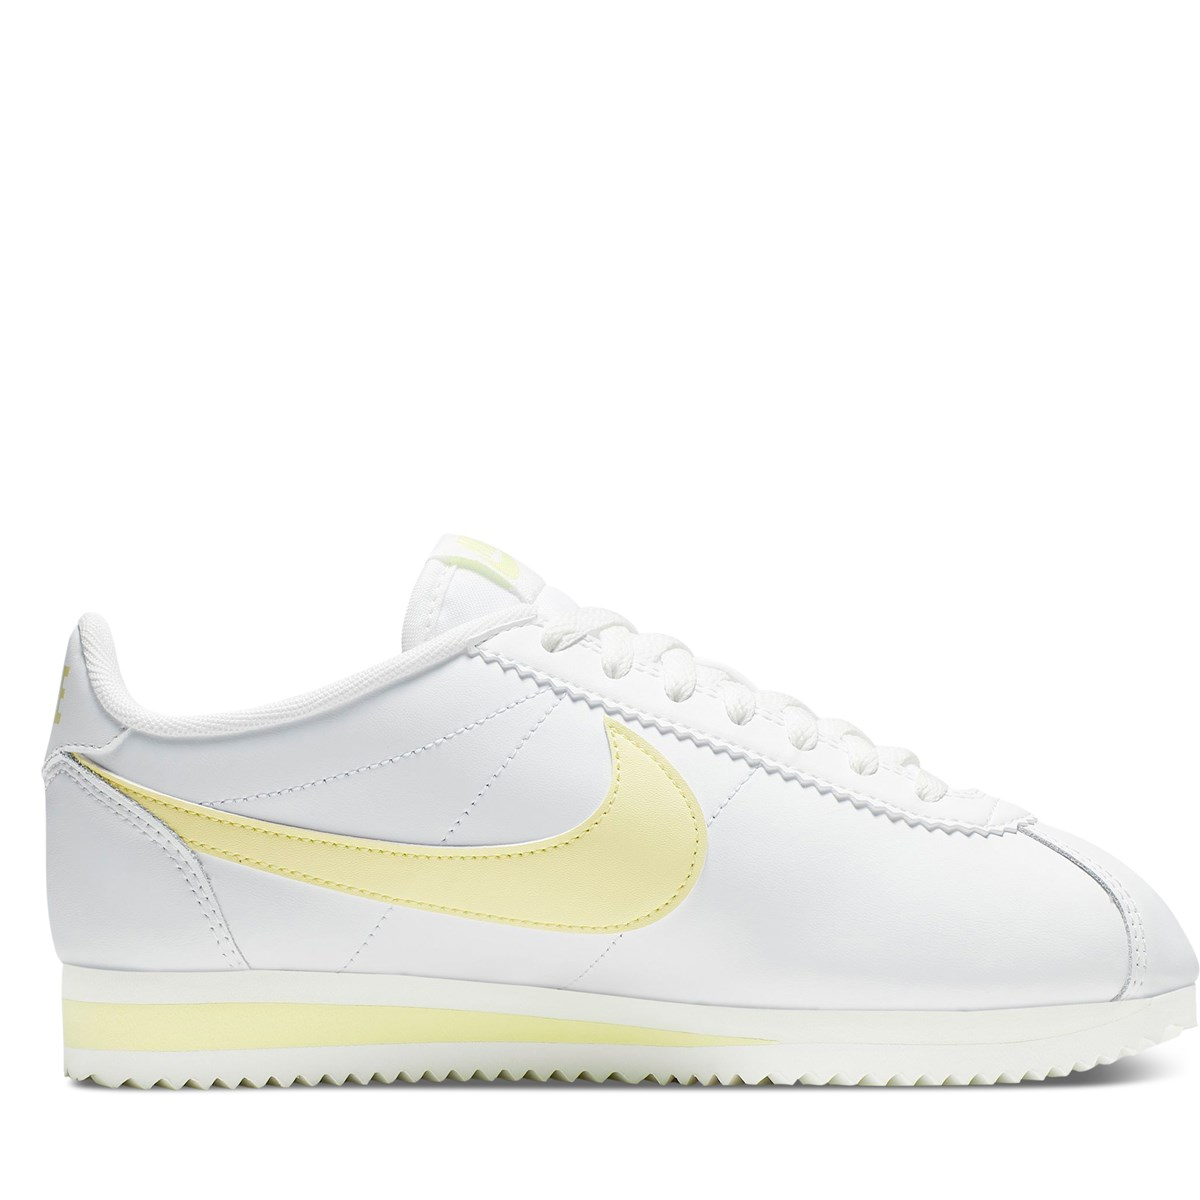 on sale 3c8be 8d35e Women's Classic Cortez Sneakers in White